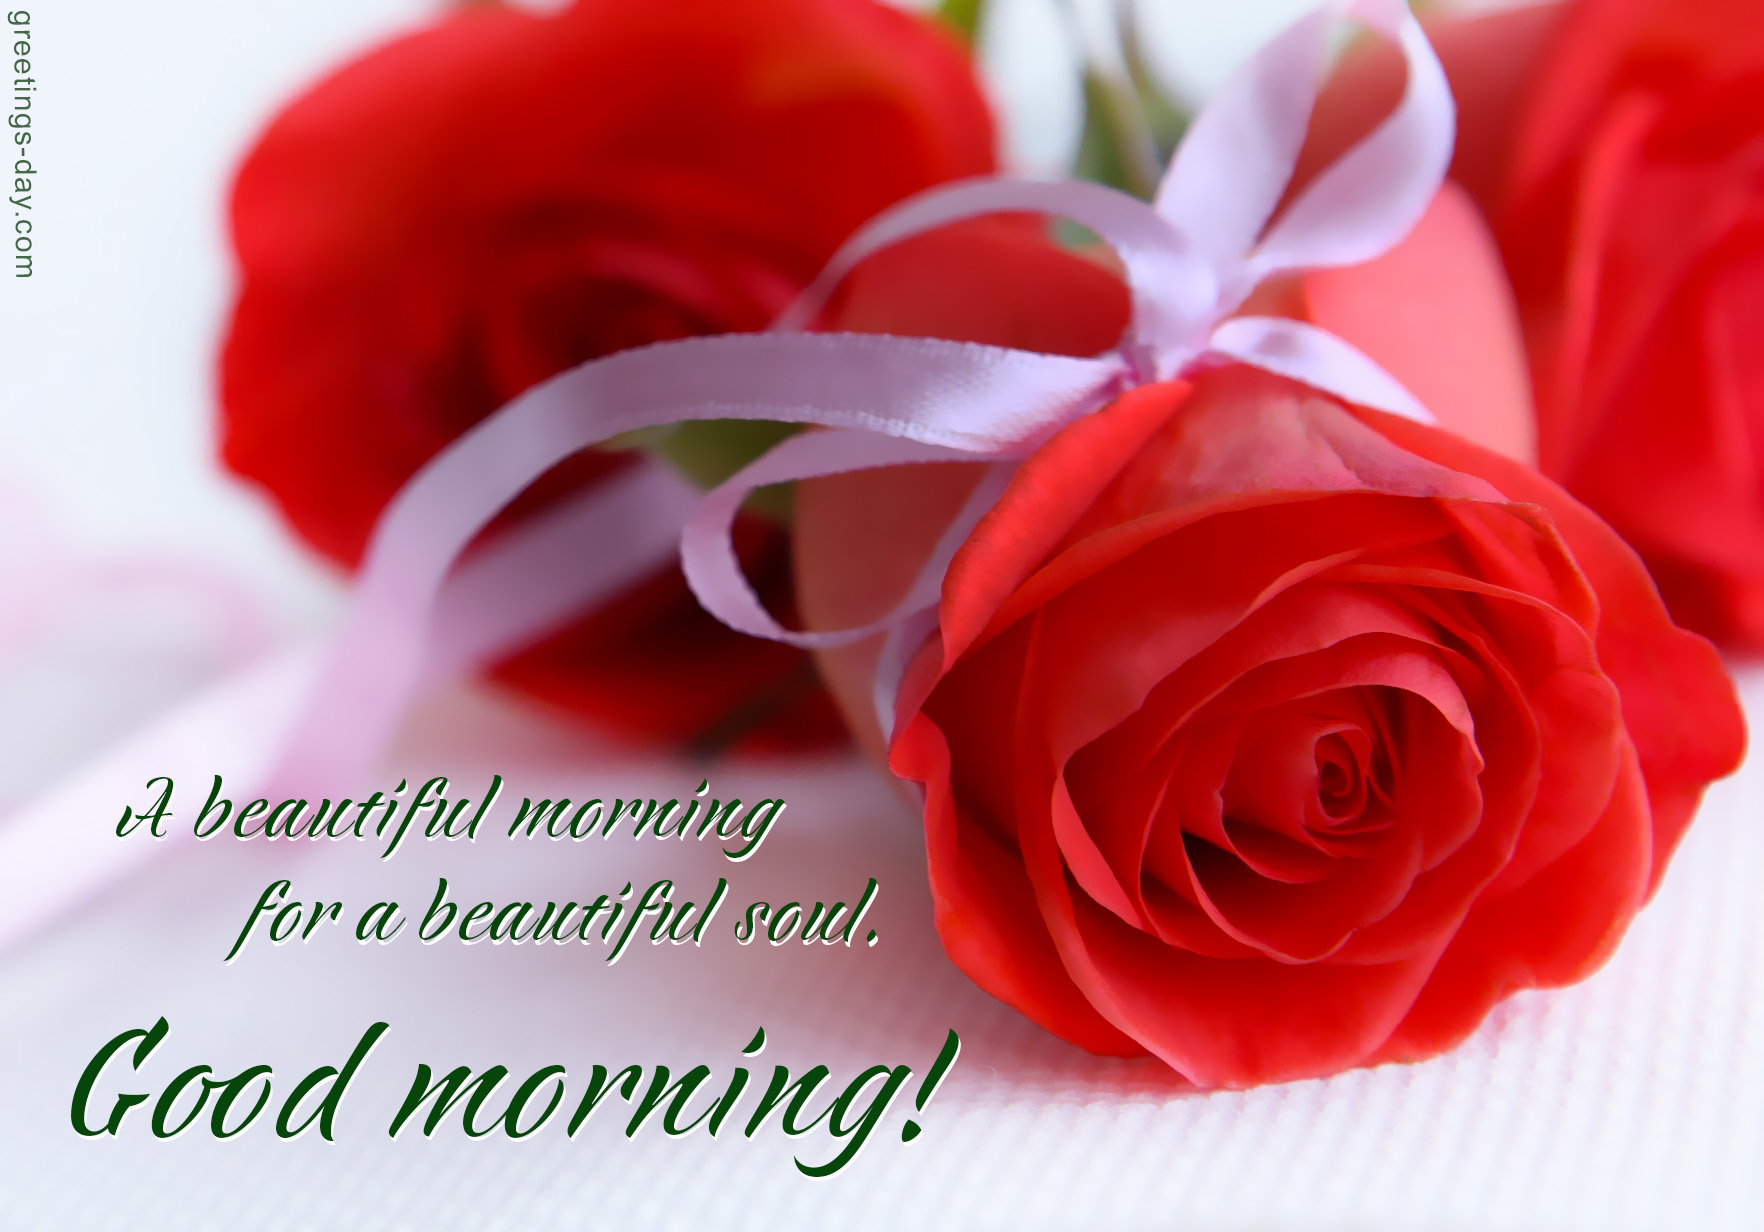 Greeting Cards For Every Day Good Morning Beautiful